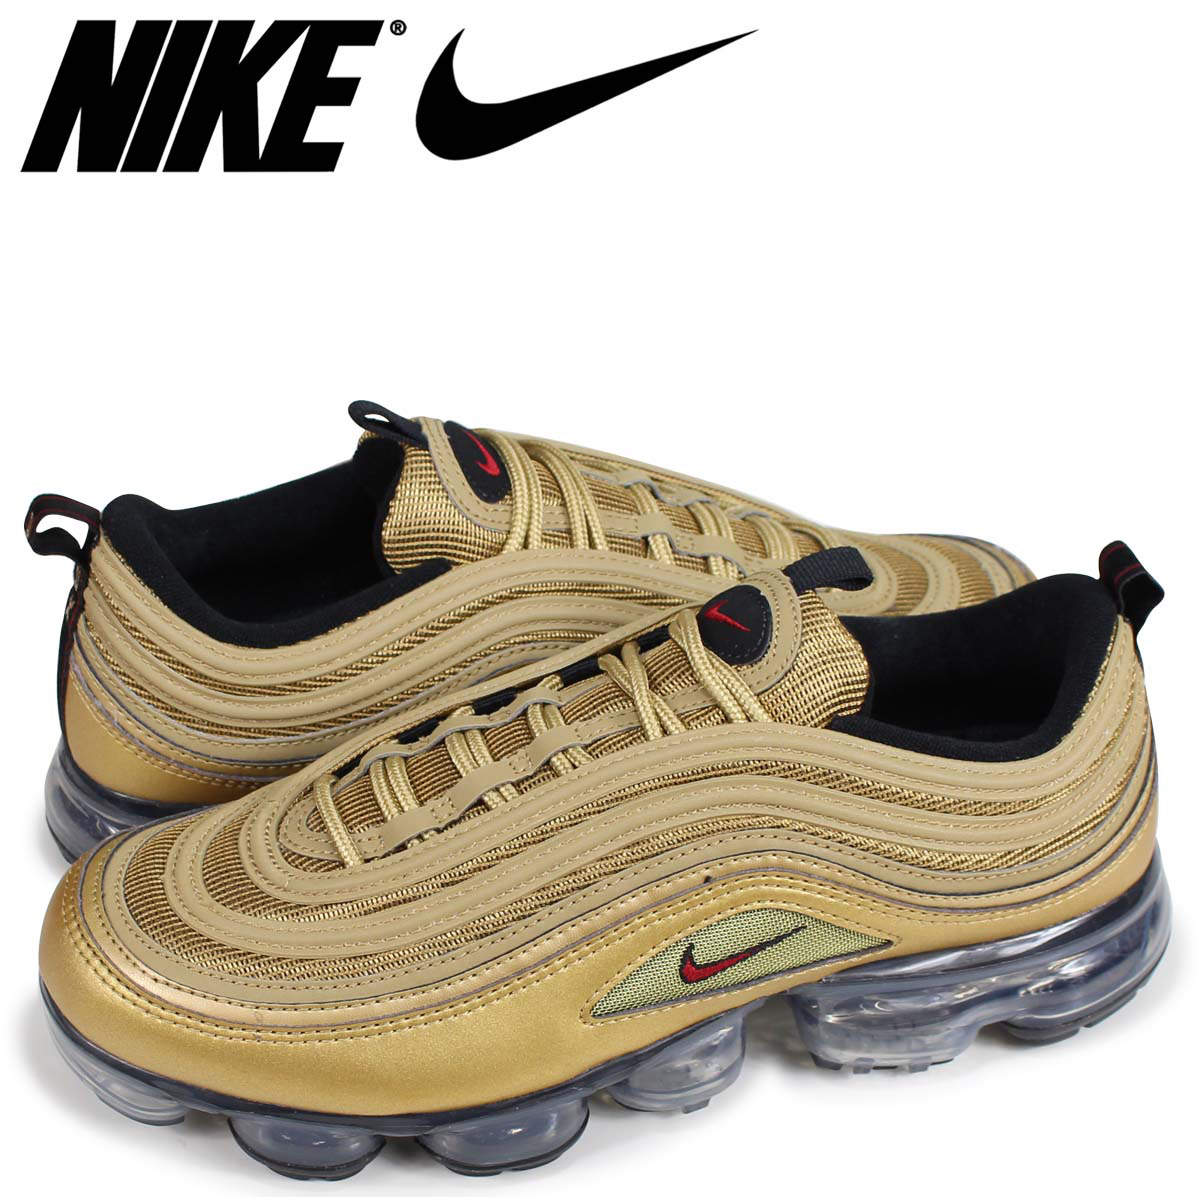 6f0a42c700 NIKE AIR VAPORMAX 97 Nike air vapor max 97 sneakers men gold AJ7291-700 ...